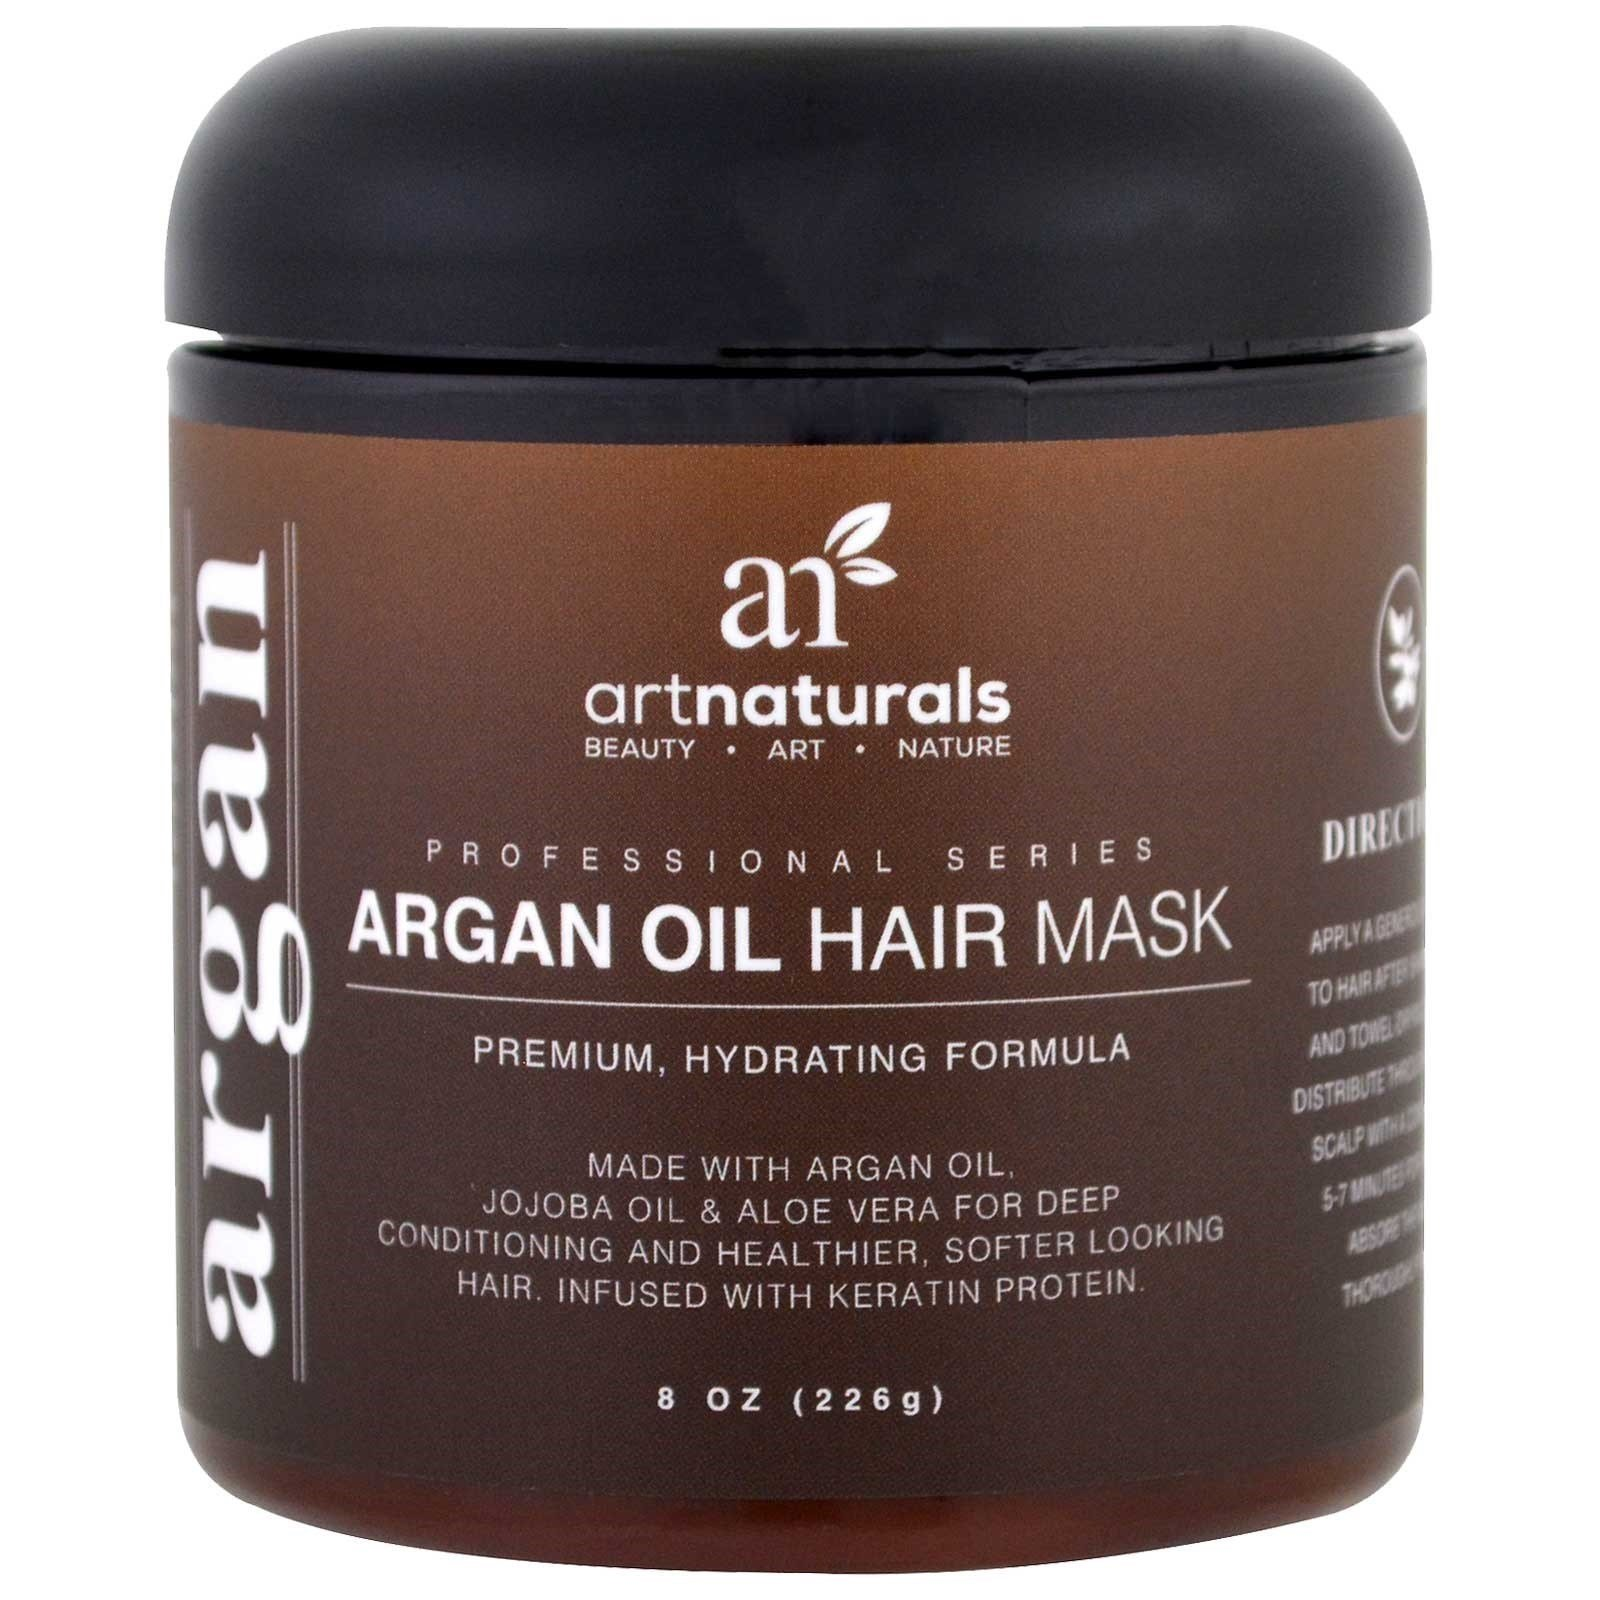 Argan Hair Mask Art Naturals